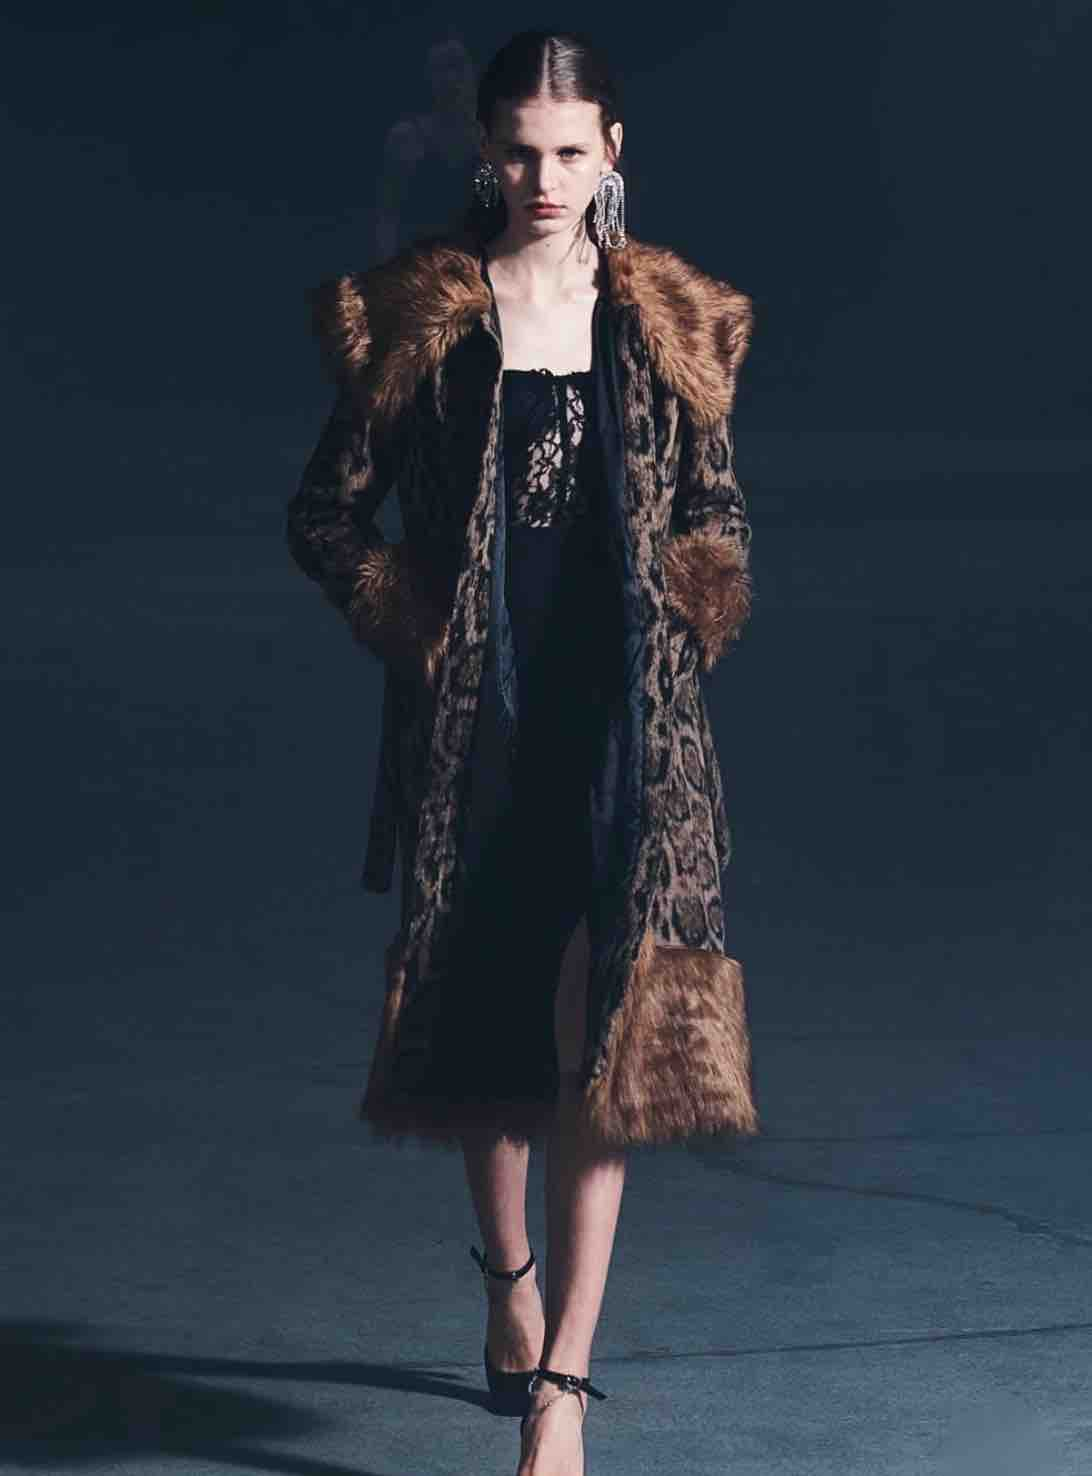 ROKH Leopard One Of The Style Trends To Shop For Fall 2021